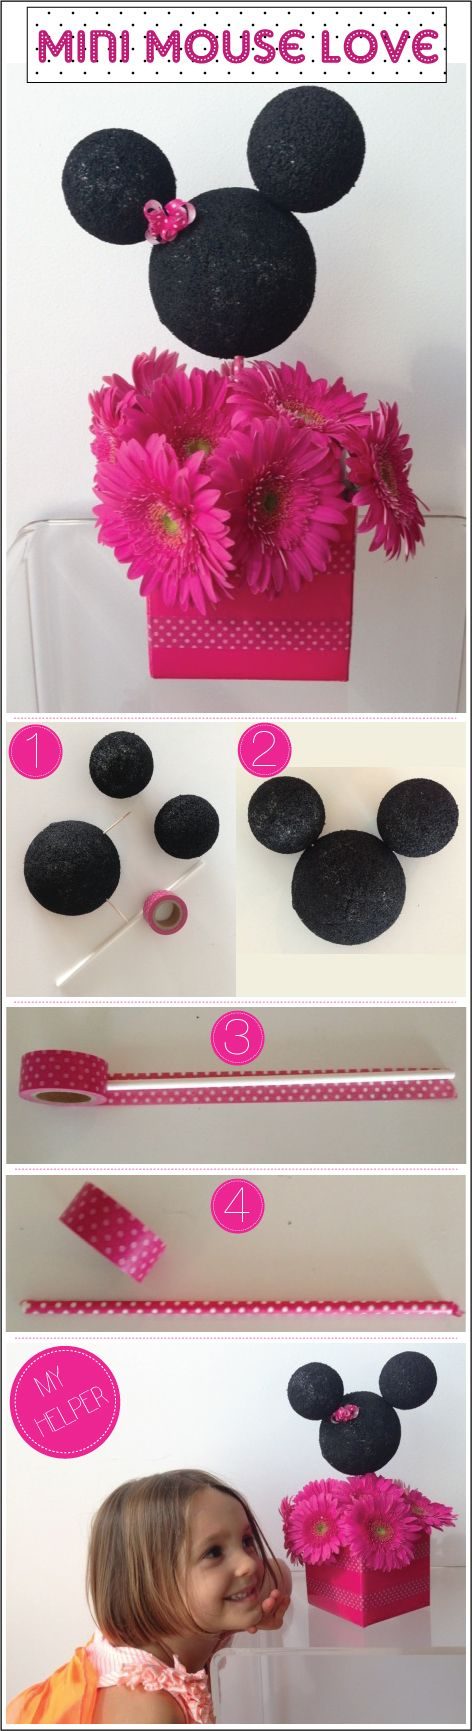 How-to-Make-a-Mini-Mouse-Centerpiece